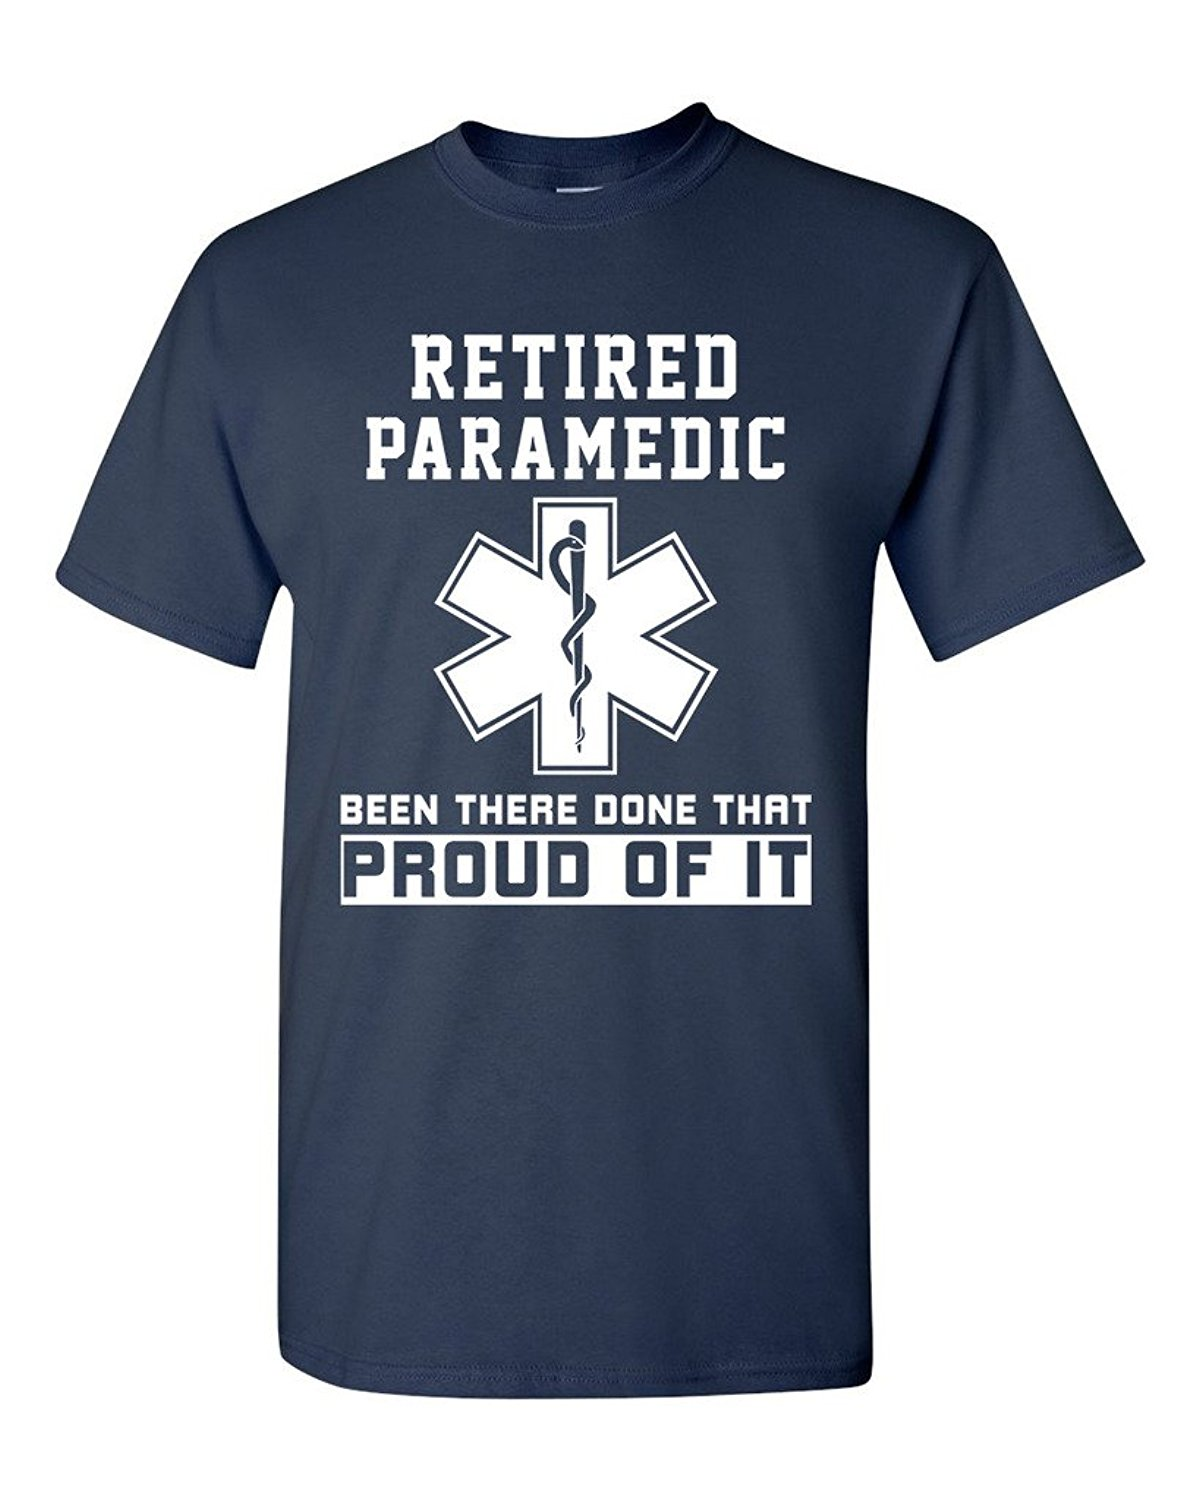 Shirt design rates - Buy Custom T Shirt Design Short Men Comfort Soft Crew Neck Retired Paramedic Been There Done That Proud Of It Shirt